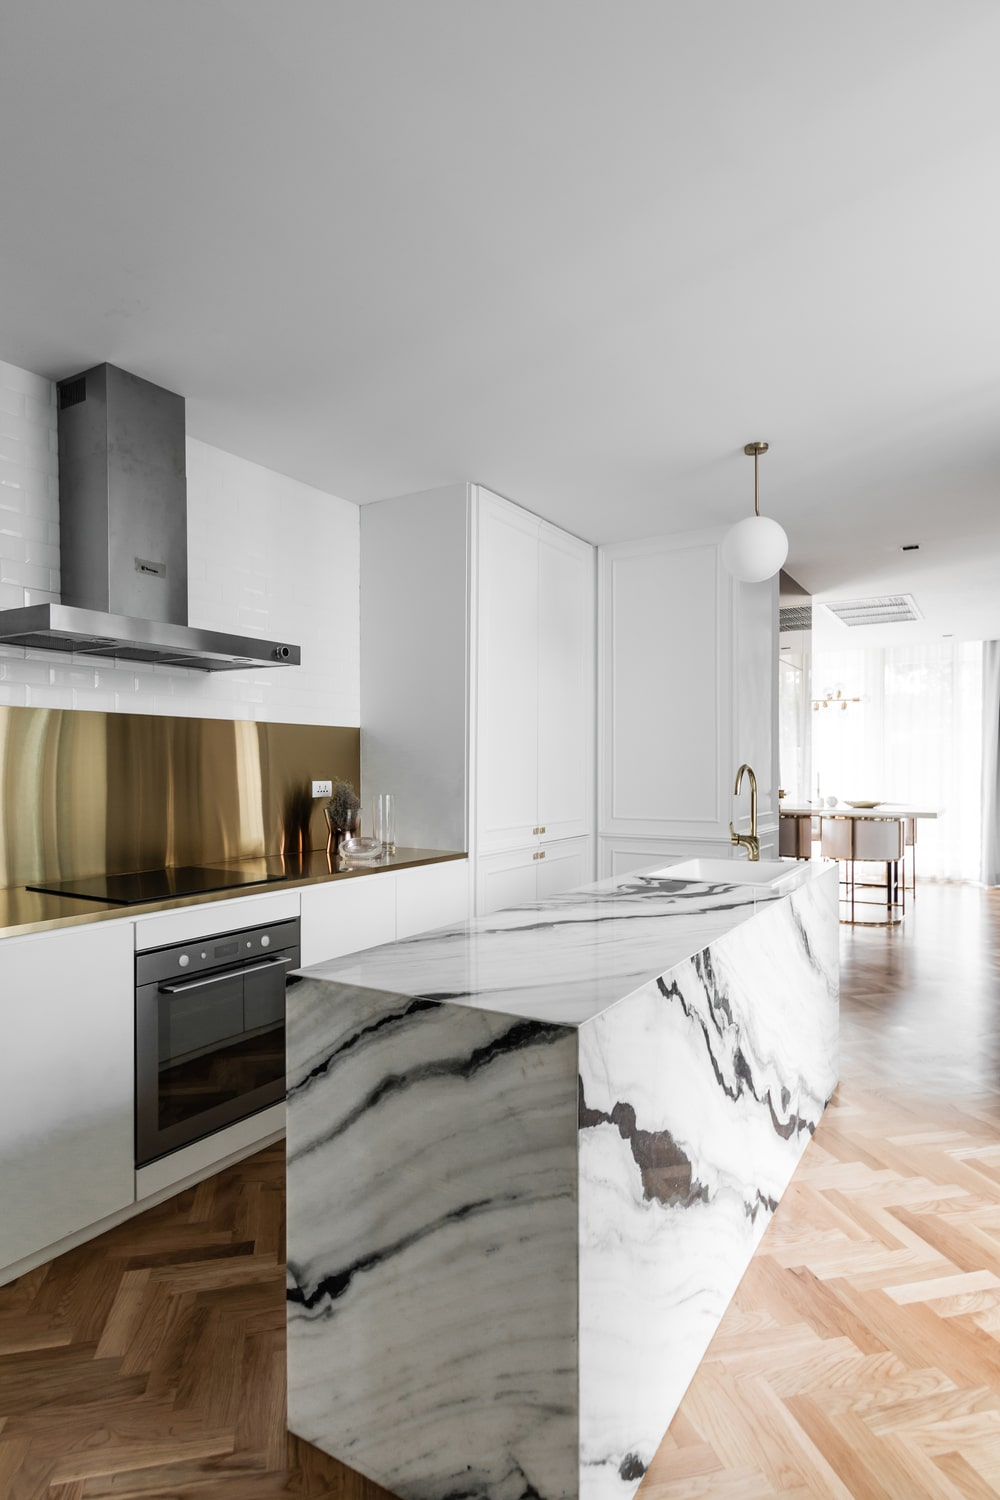 Across the kitche island is the cooking area that has a golden backsplash and a stainless steel vent hood.